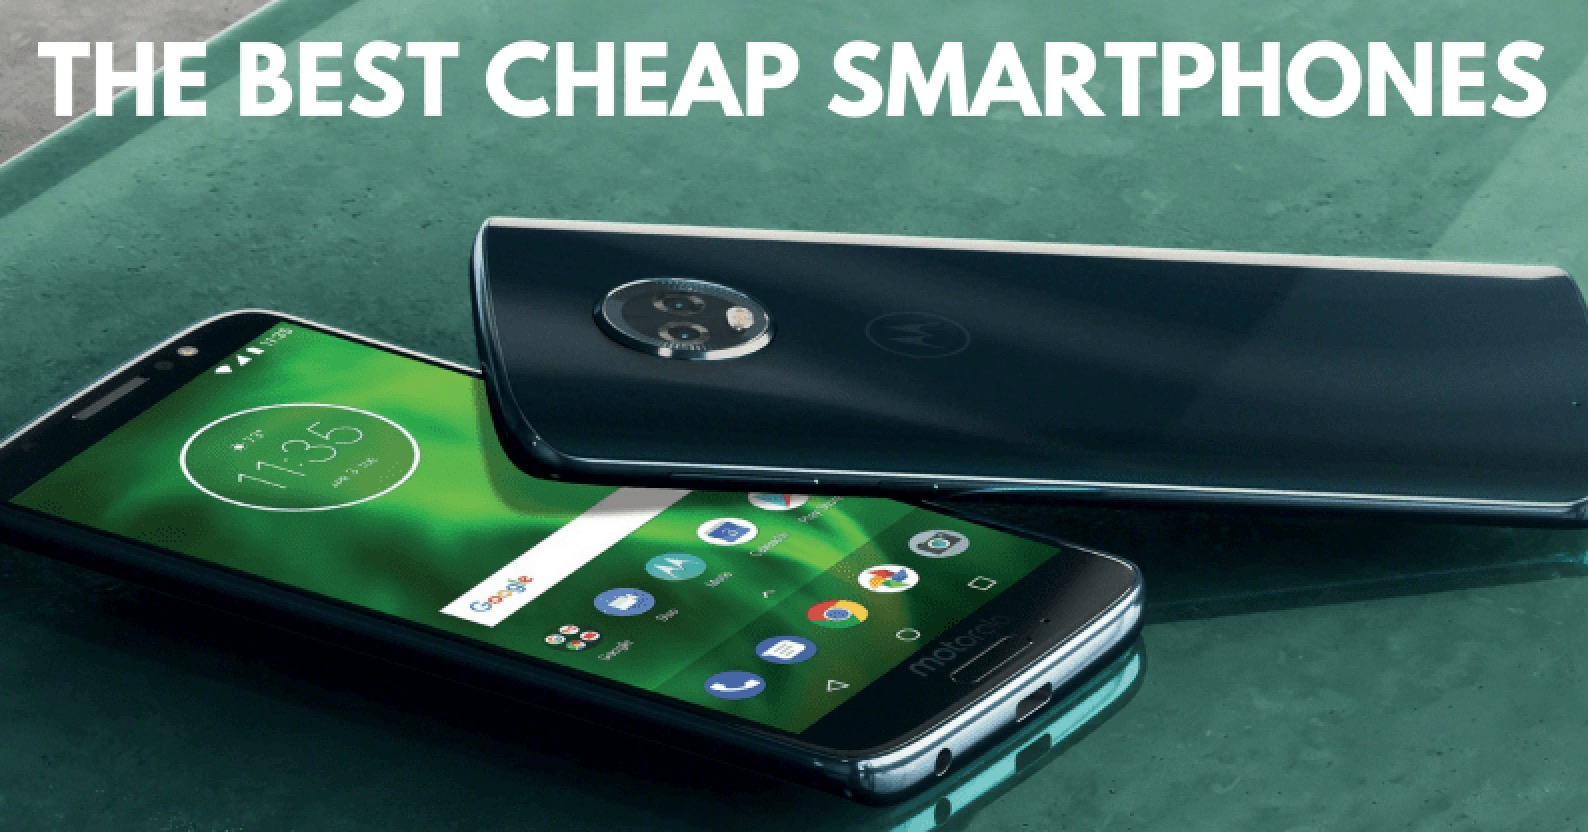 15 Best Cheap Smartphones: From Best to Worst